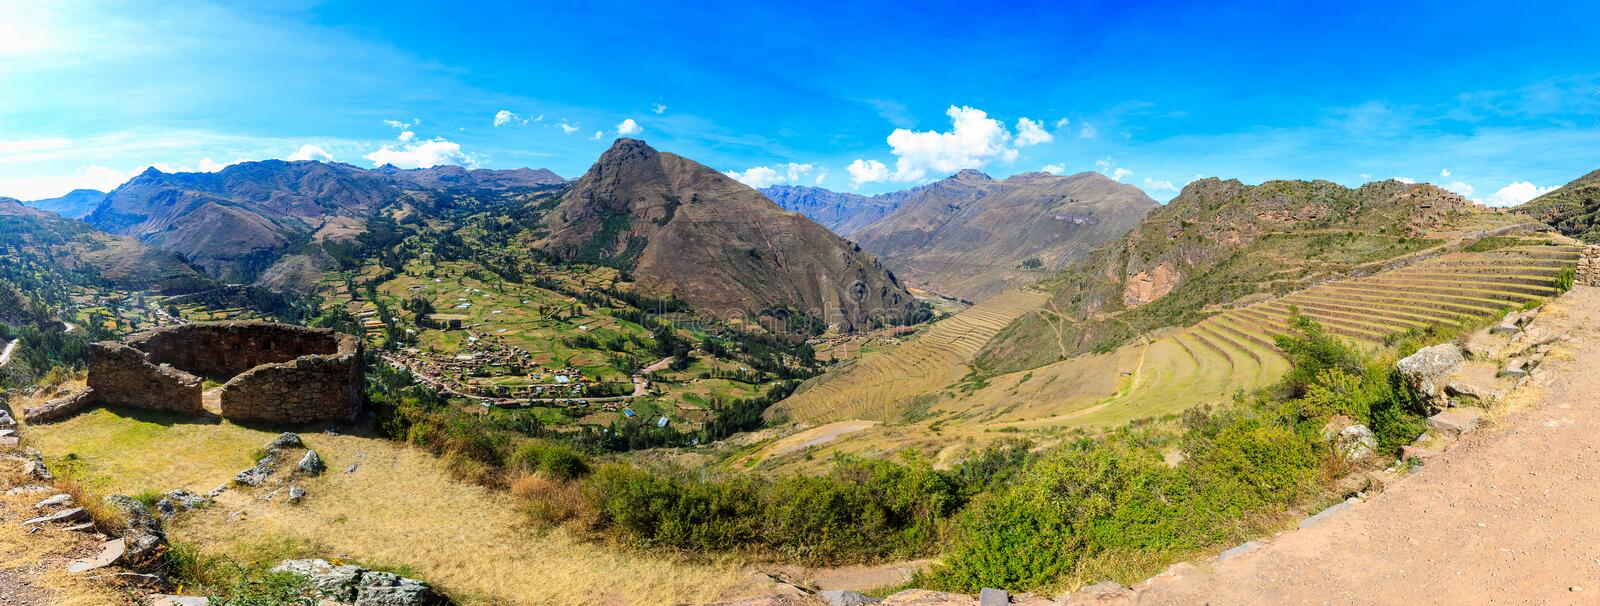 Panorama of Pisaq Inca Site in the Sacred Valley in Peru near Cusco stock images